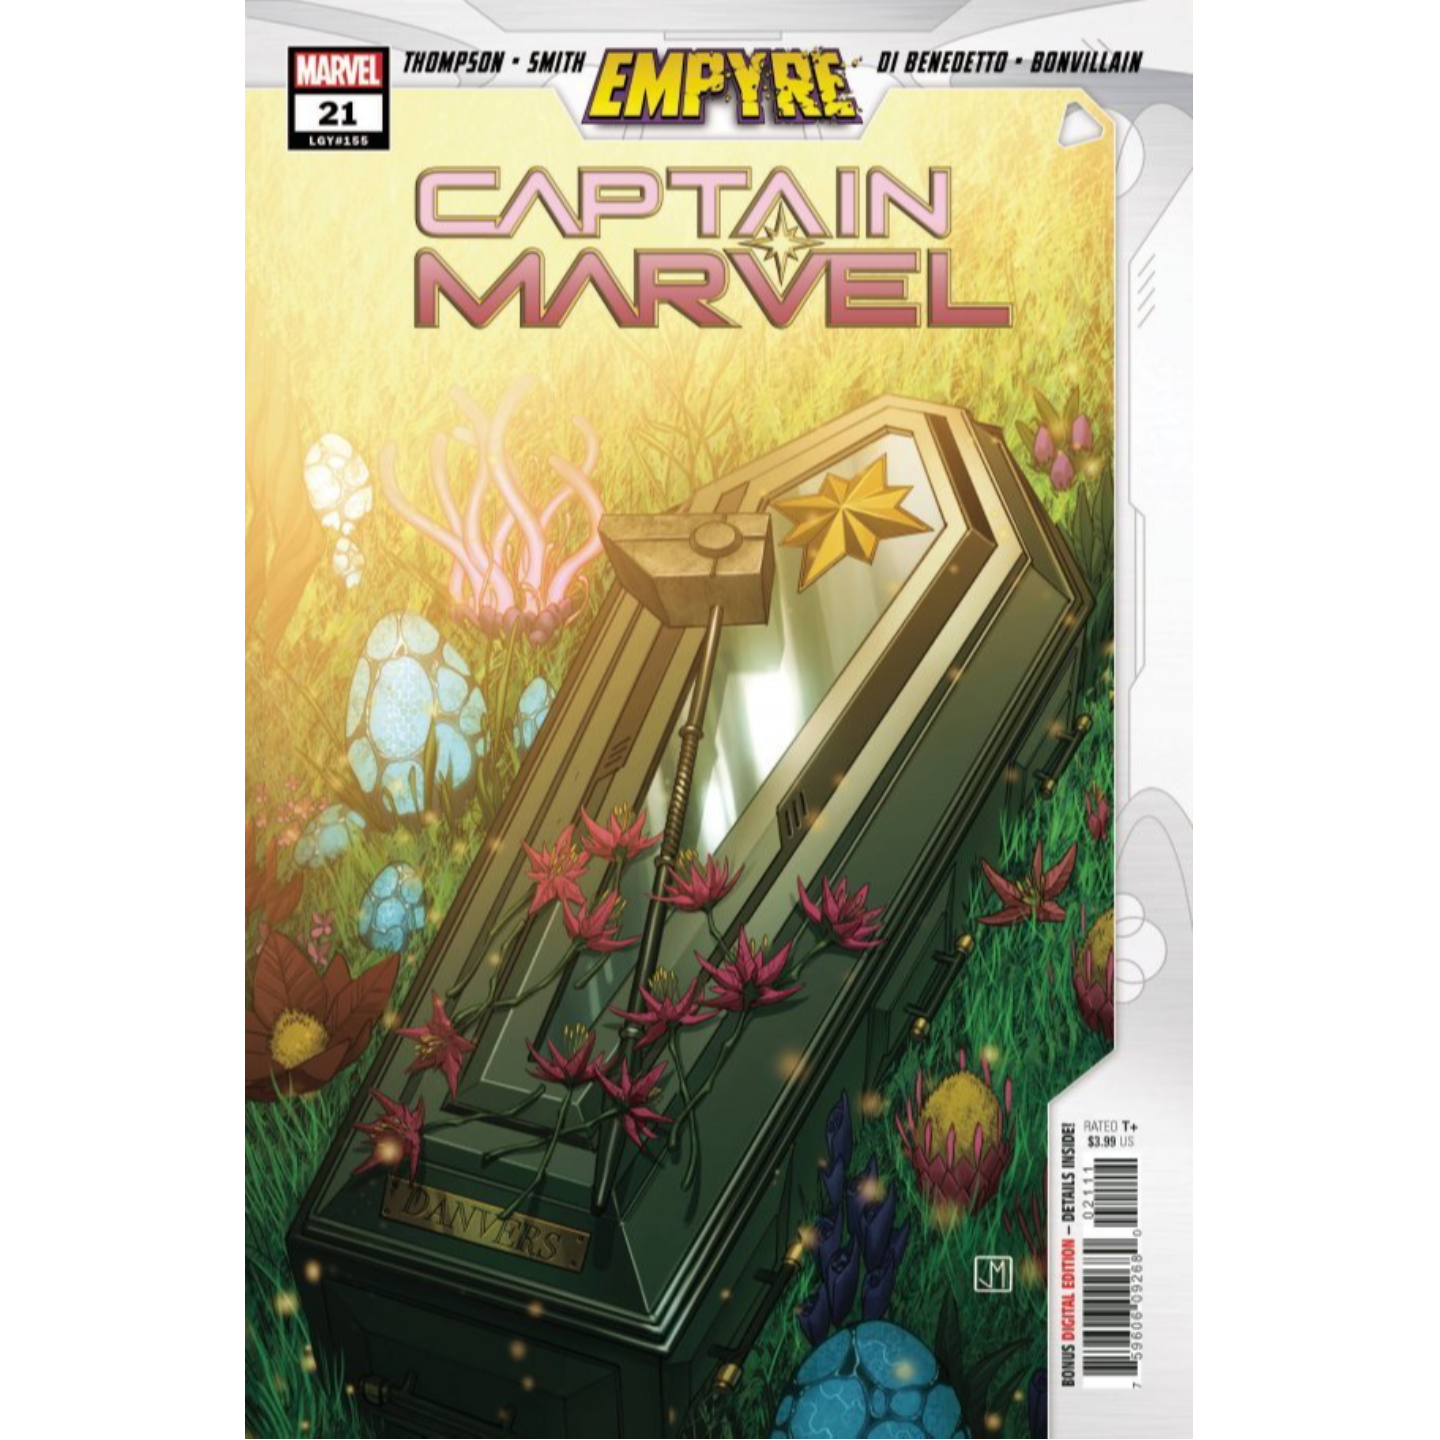 CAPTAIN MARVEL #21